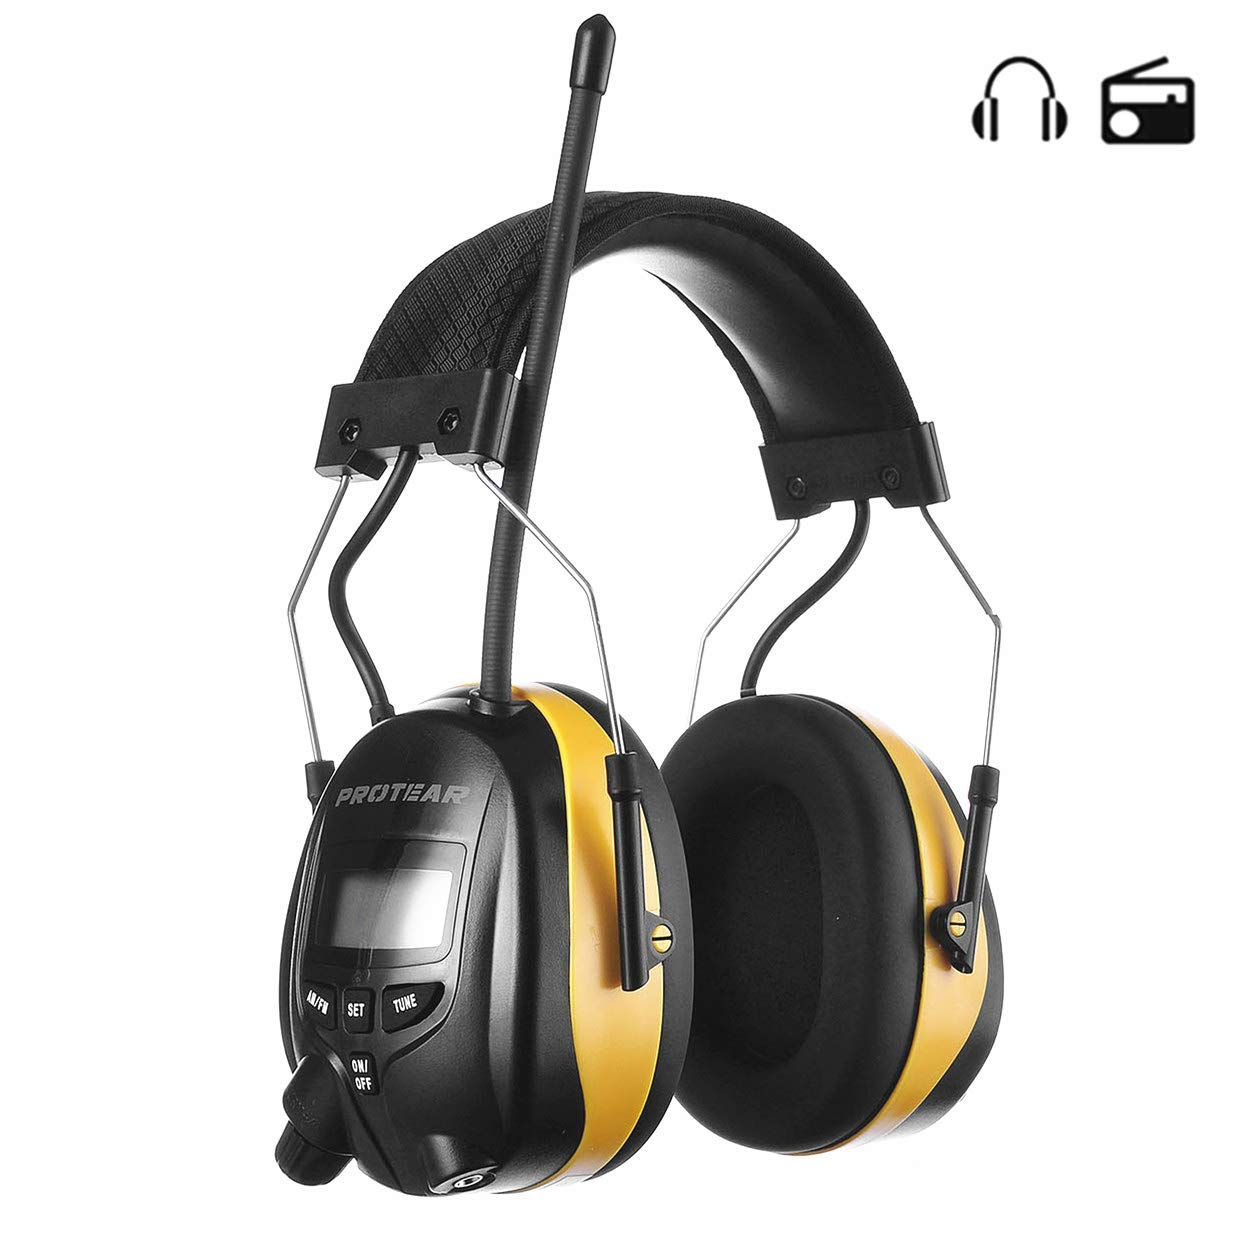 PROTEAR Digital AM FM Radio Earmuff, Ear Protection Headphones, Electronic Noise Reduction Ear Defender, Perfect for Mowing Working (Yellow) by PROTEAR